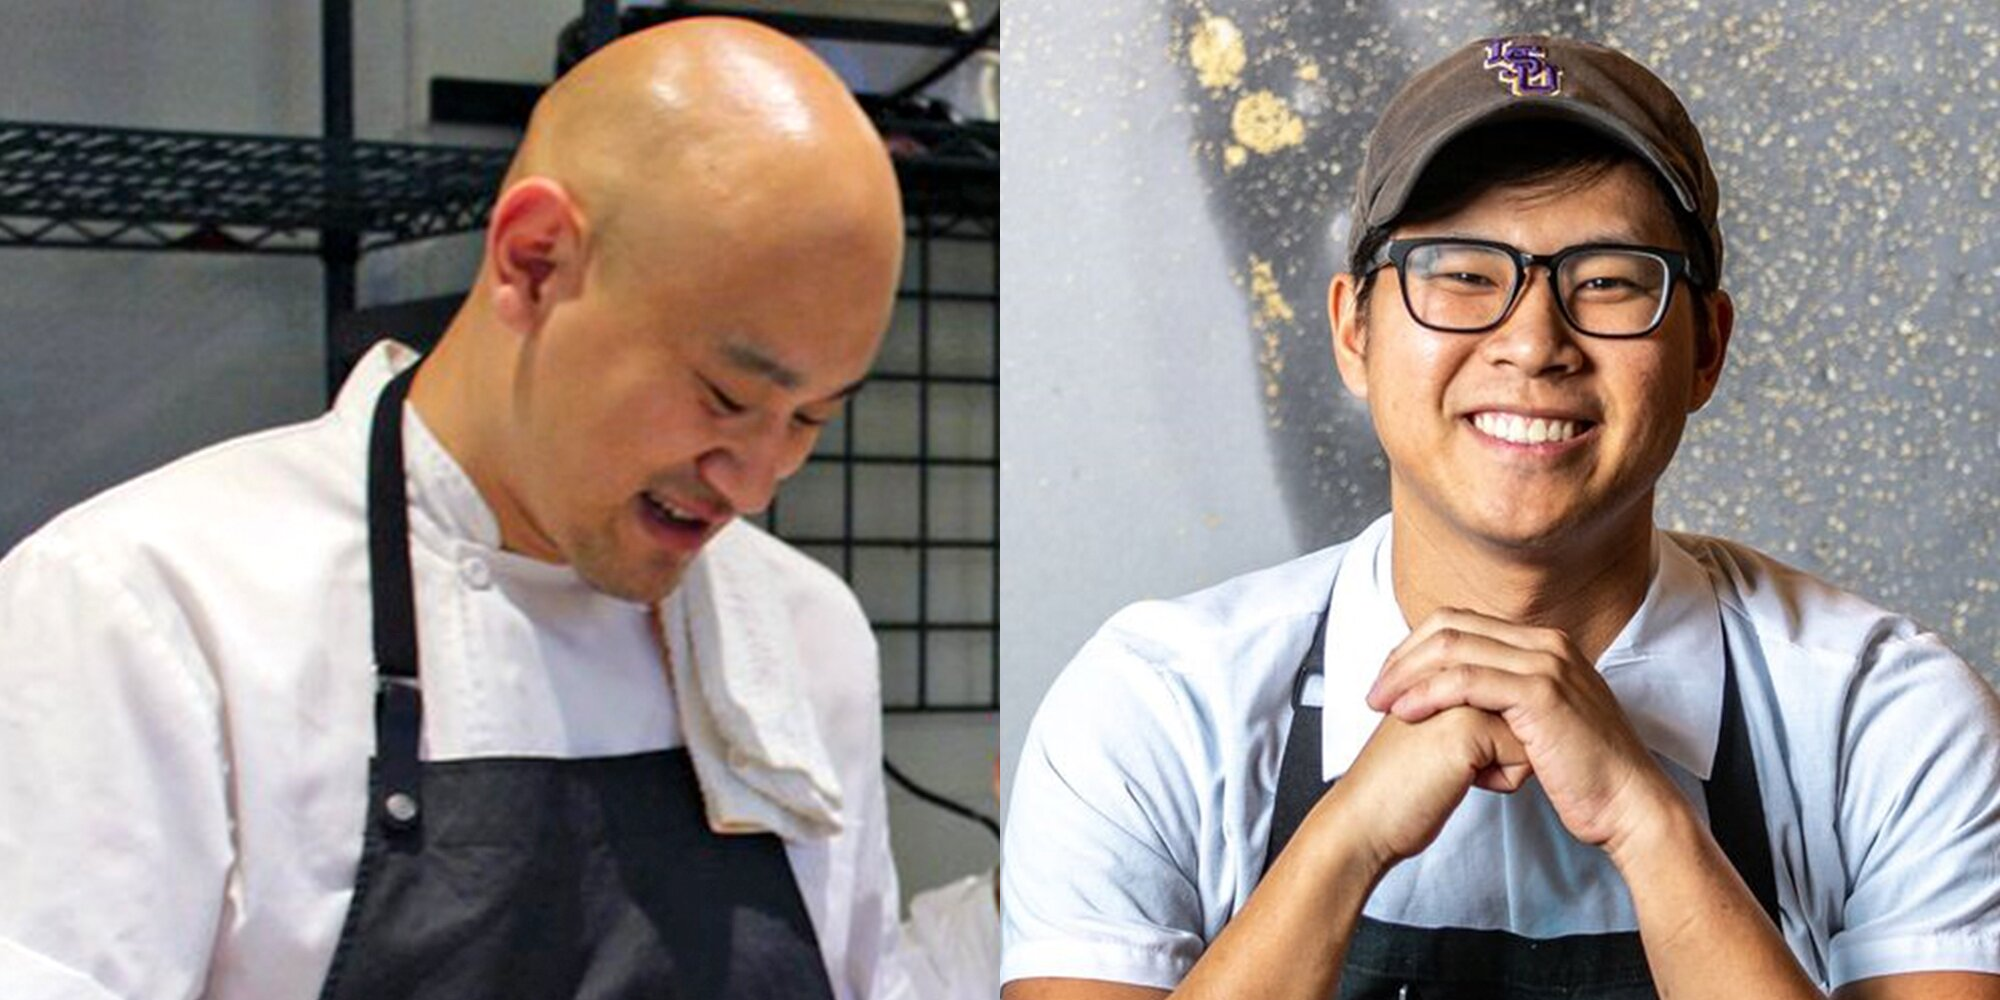 Chefs Around the Country Are Mobilizing to Fight Anti-Asian Violence